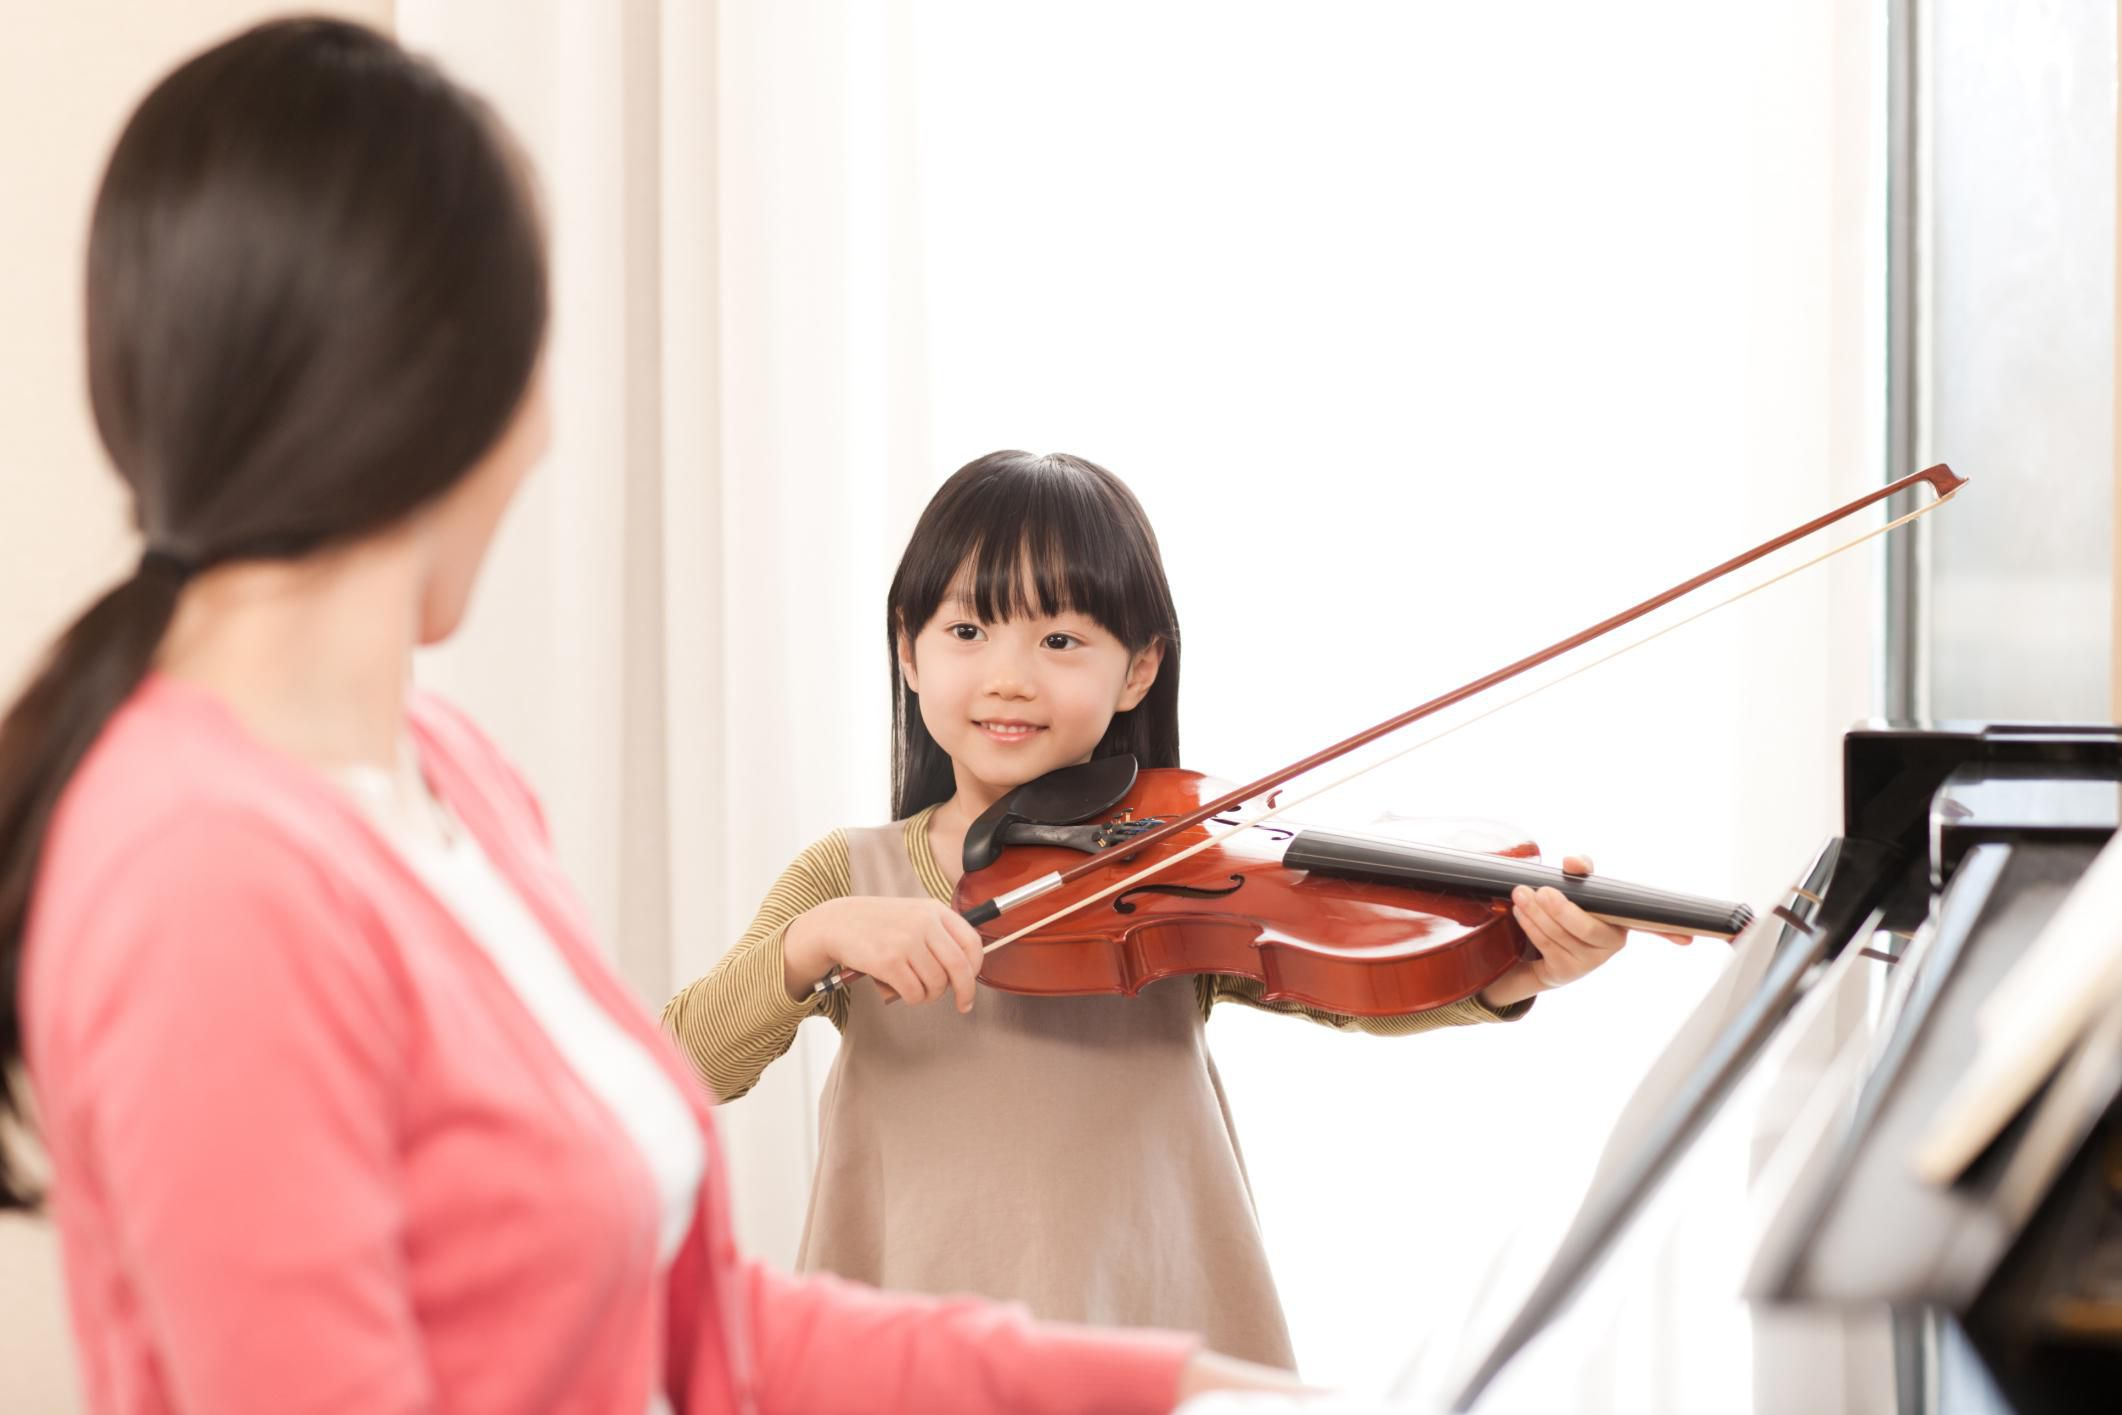 The Top 10 Musical Instruments for Beginners